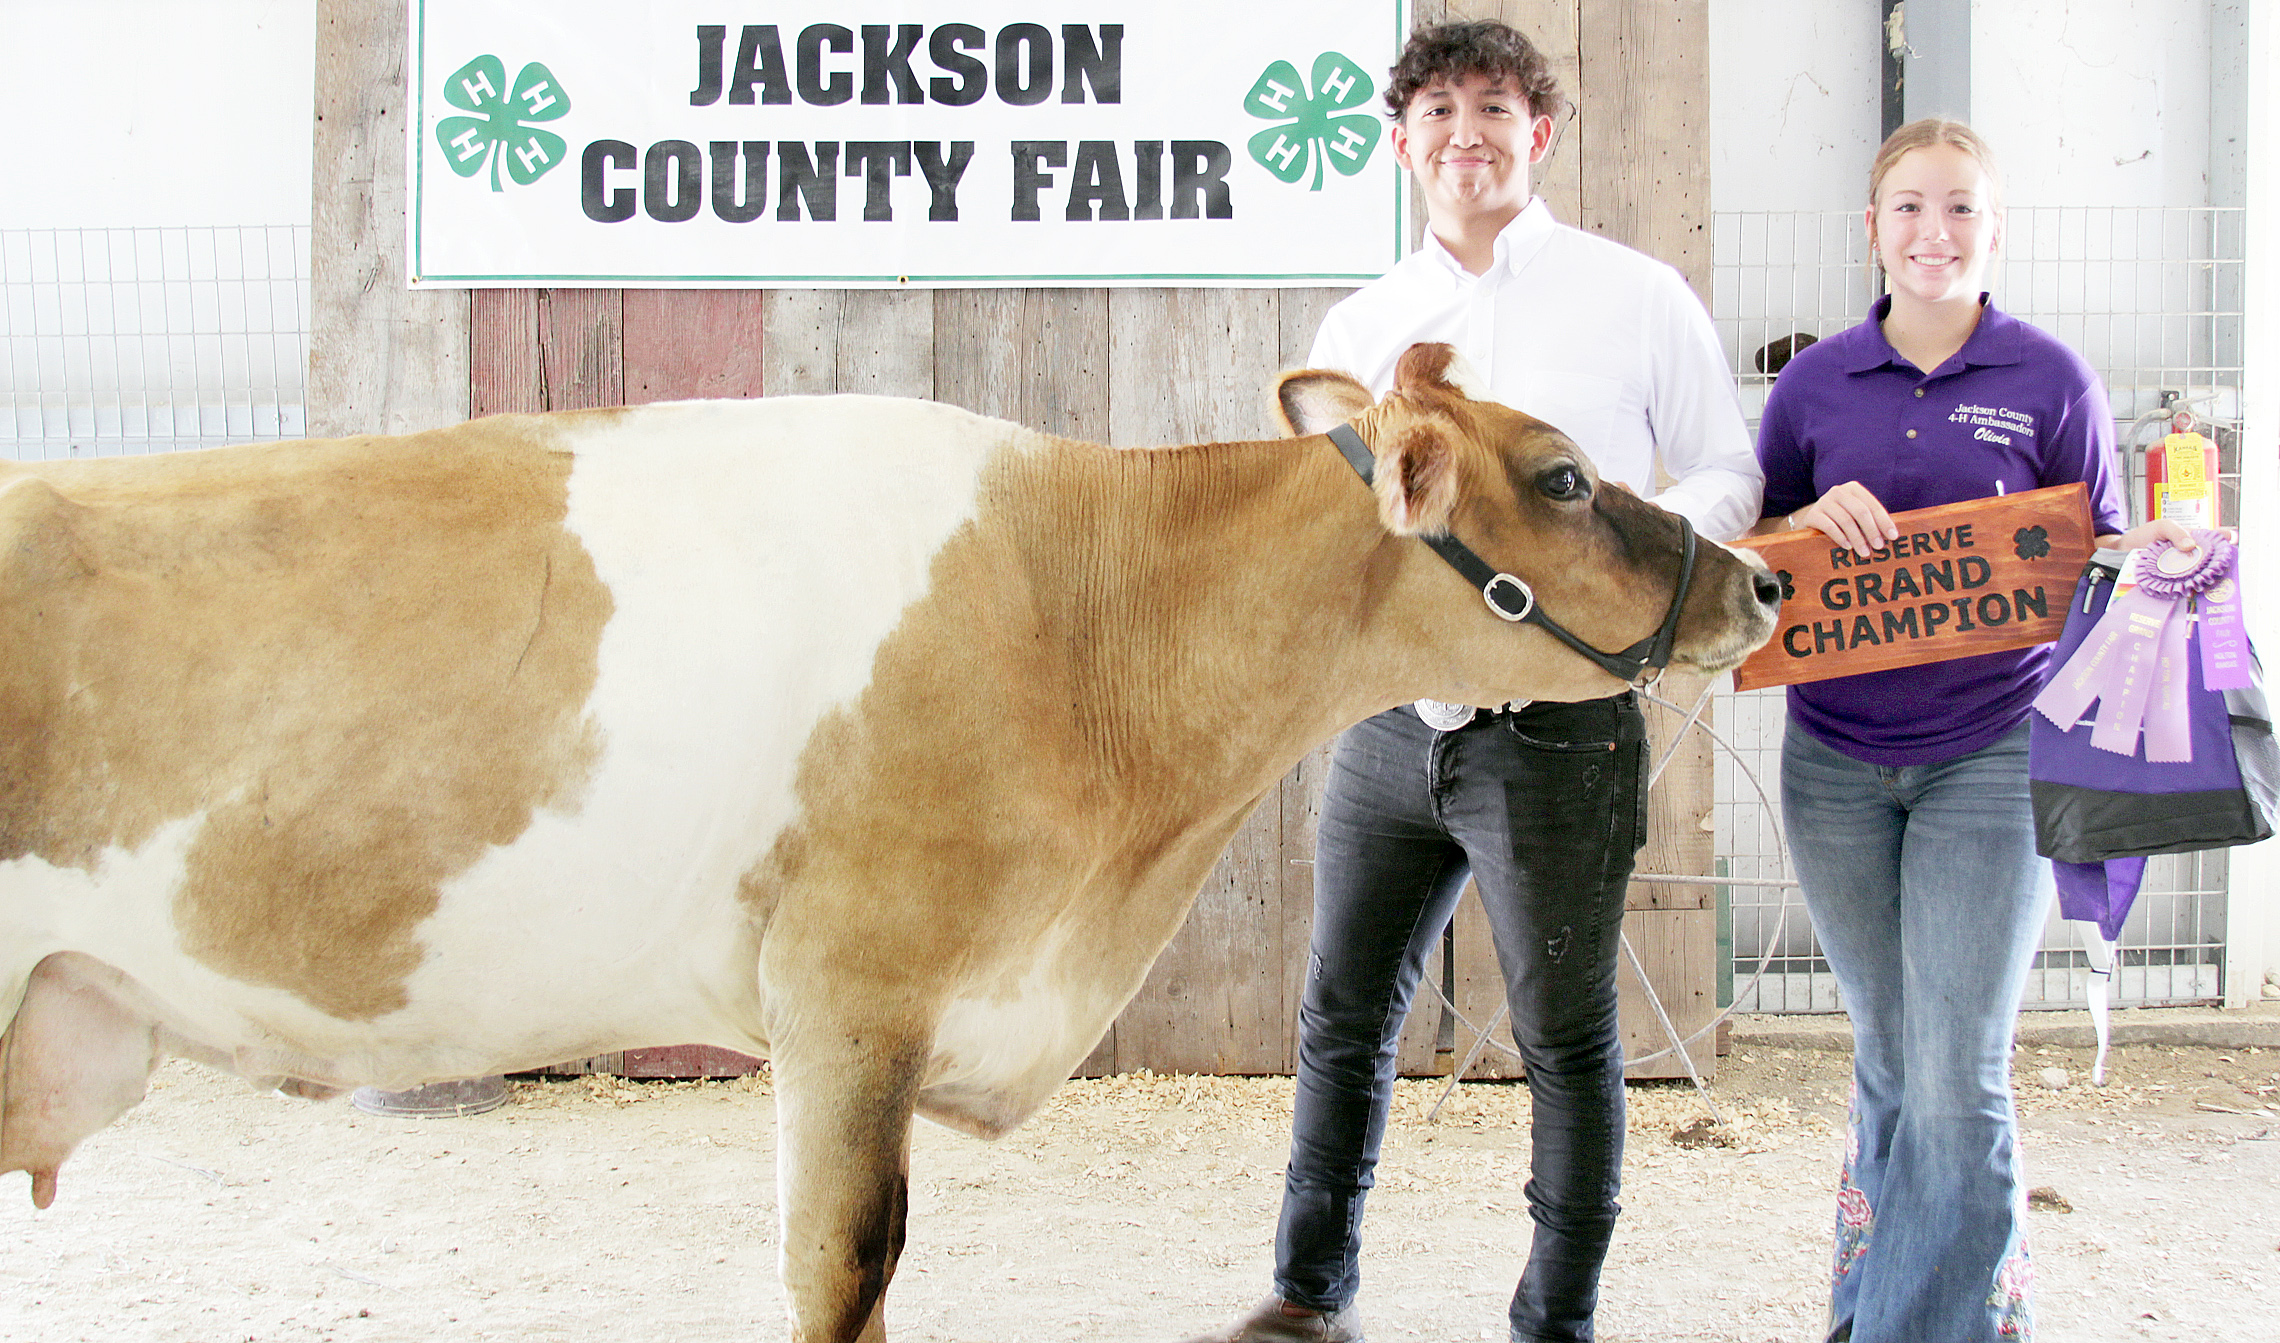 Jack Wiedmann of the Hoyt Livewires 4-H Club showed the Reserve Grand Champion dairy cow at the 2020 Jackson County Fair.